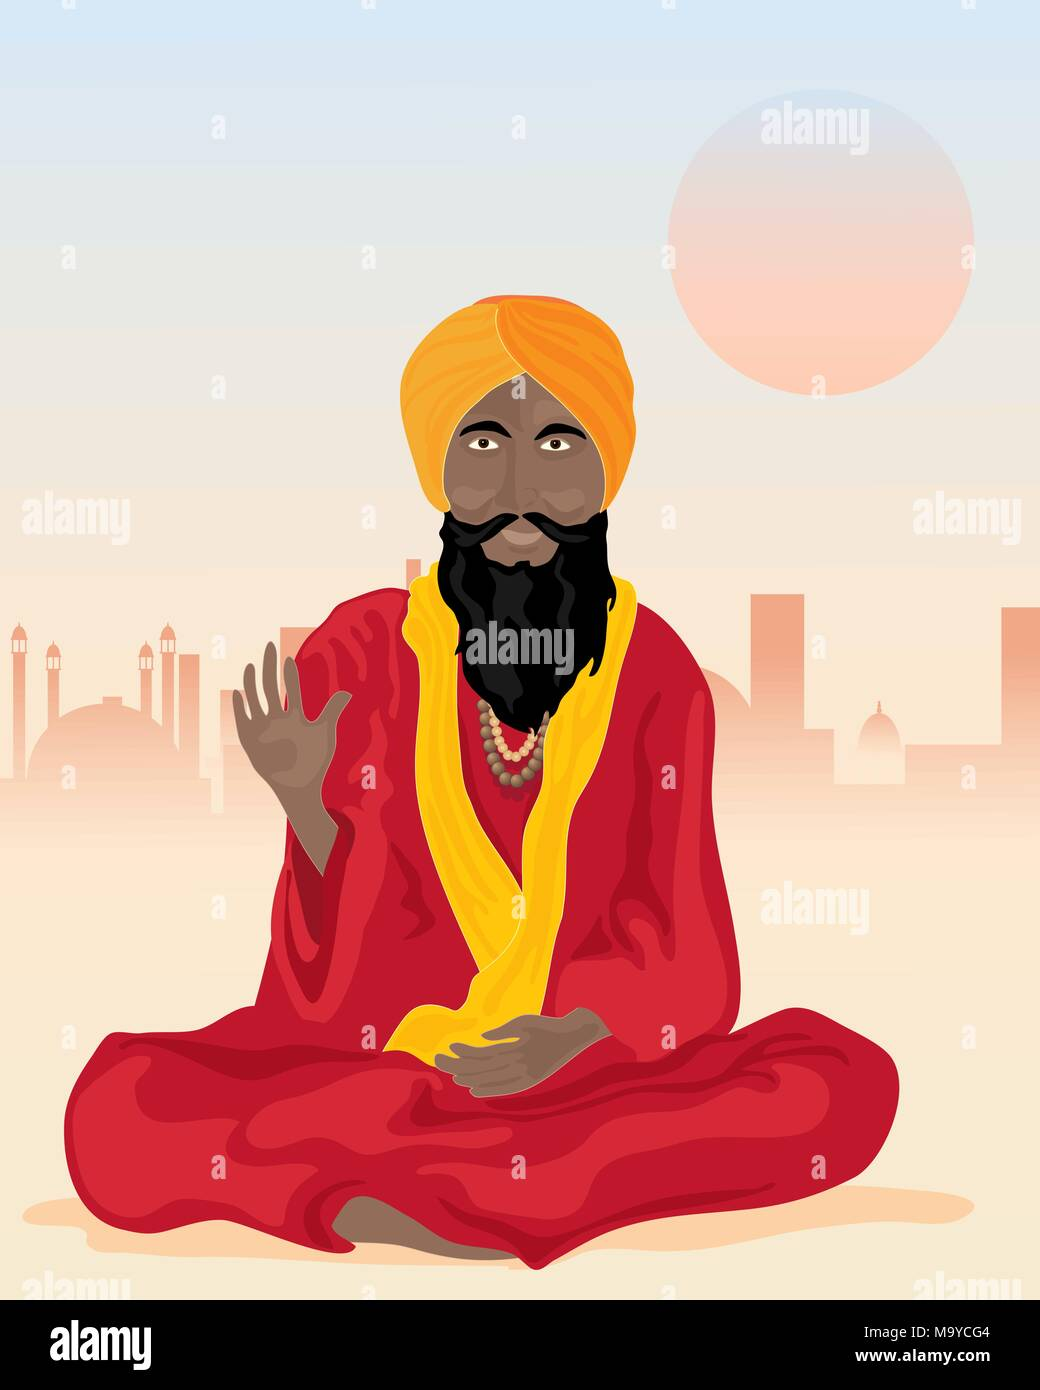 an illustration of an indian sadhu sat cross legged with colorful turban and robes in front of a dusty city - Stock Vector